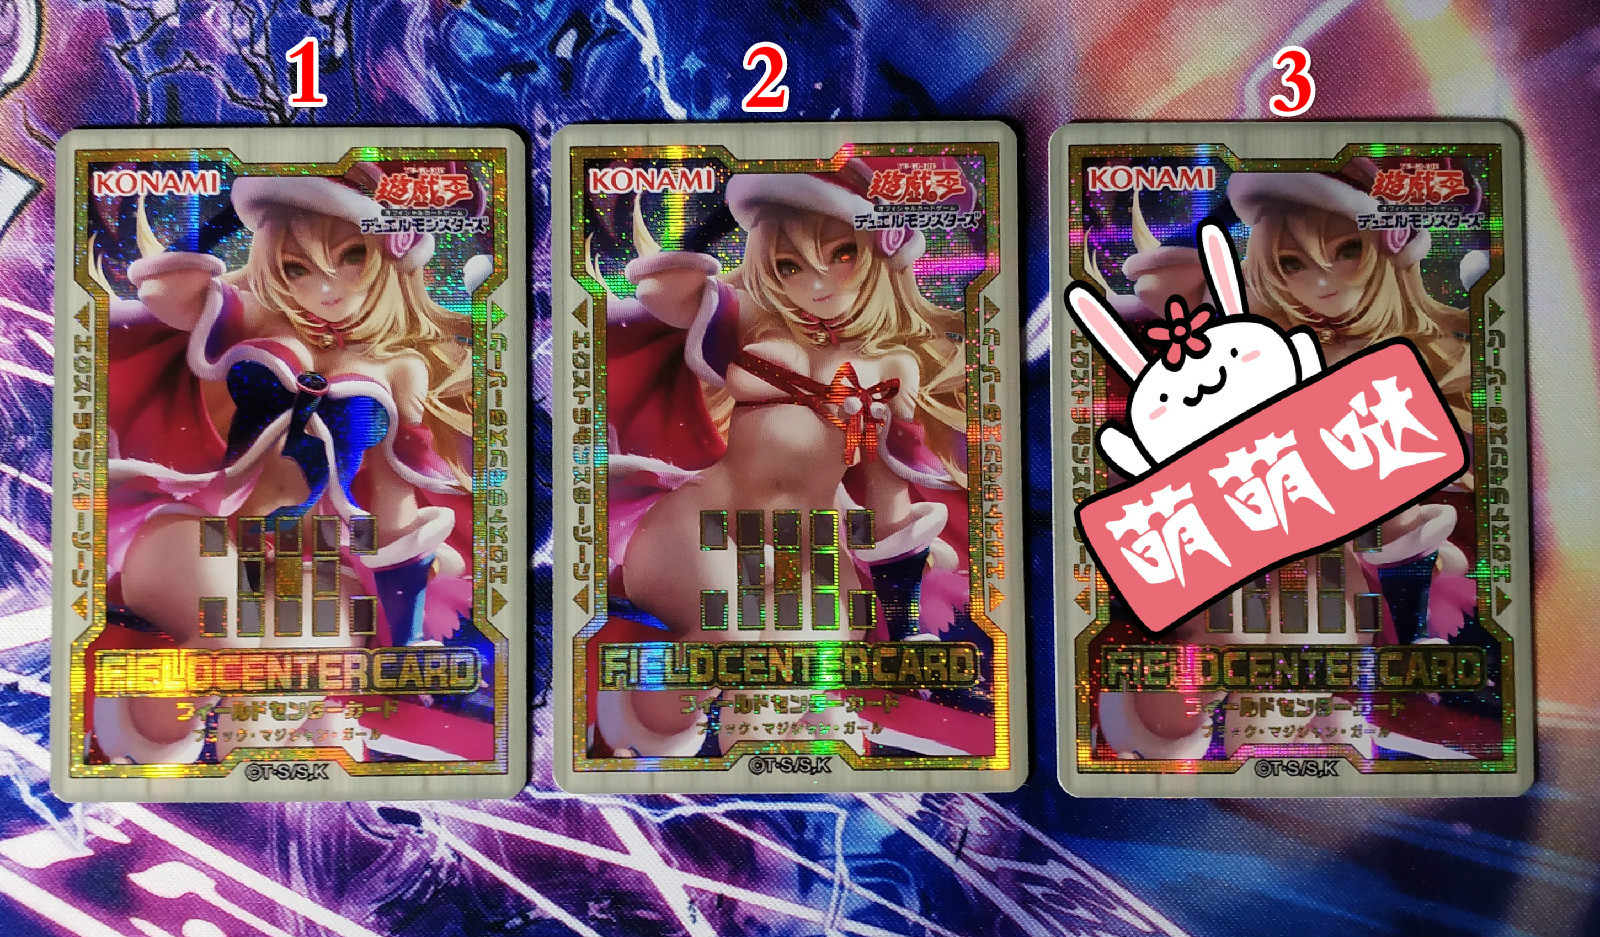 3pcs Yu Gi Oh DIY Dark Magician Girl Colorful Toys Hobbies Hobby Collectibles Game Collection Anime Cards